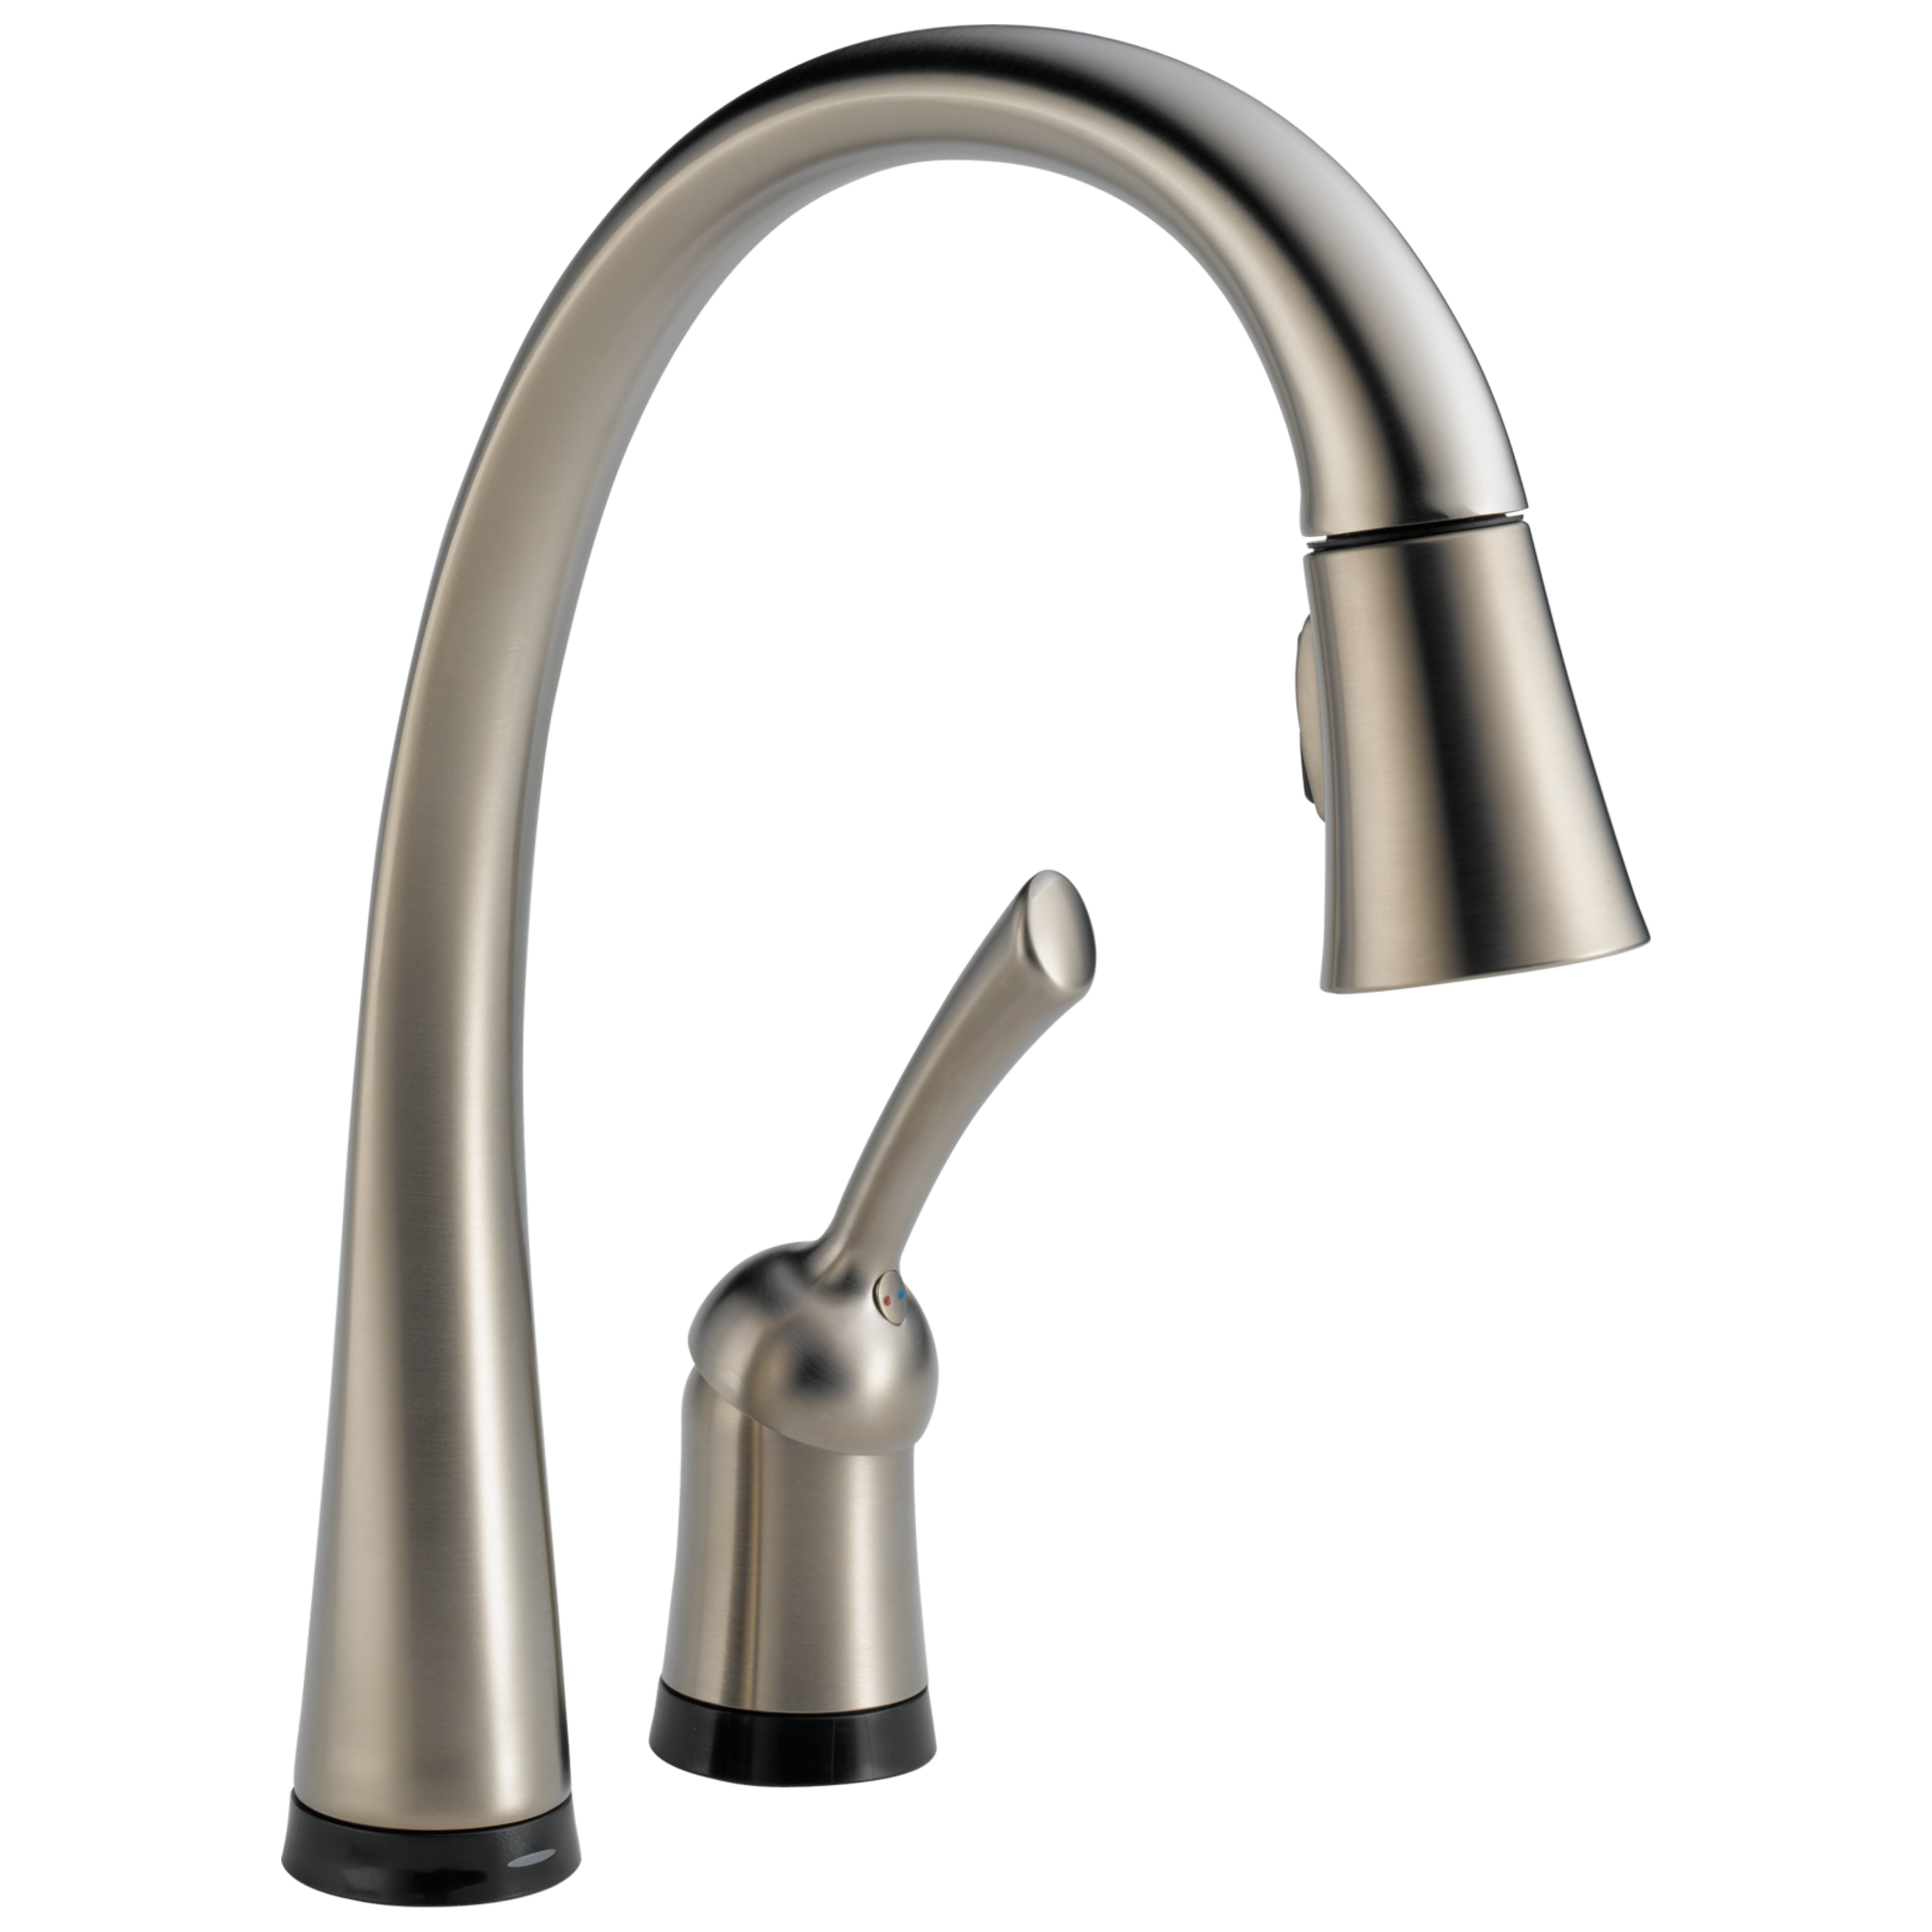 980t ss dst single handle pull down kitchen faucet with touch2o